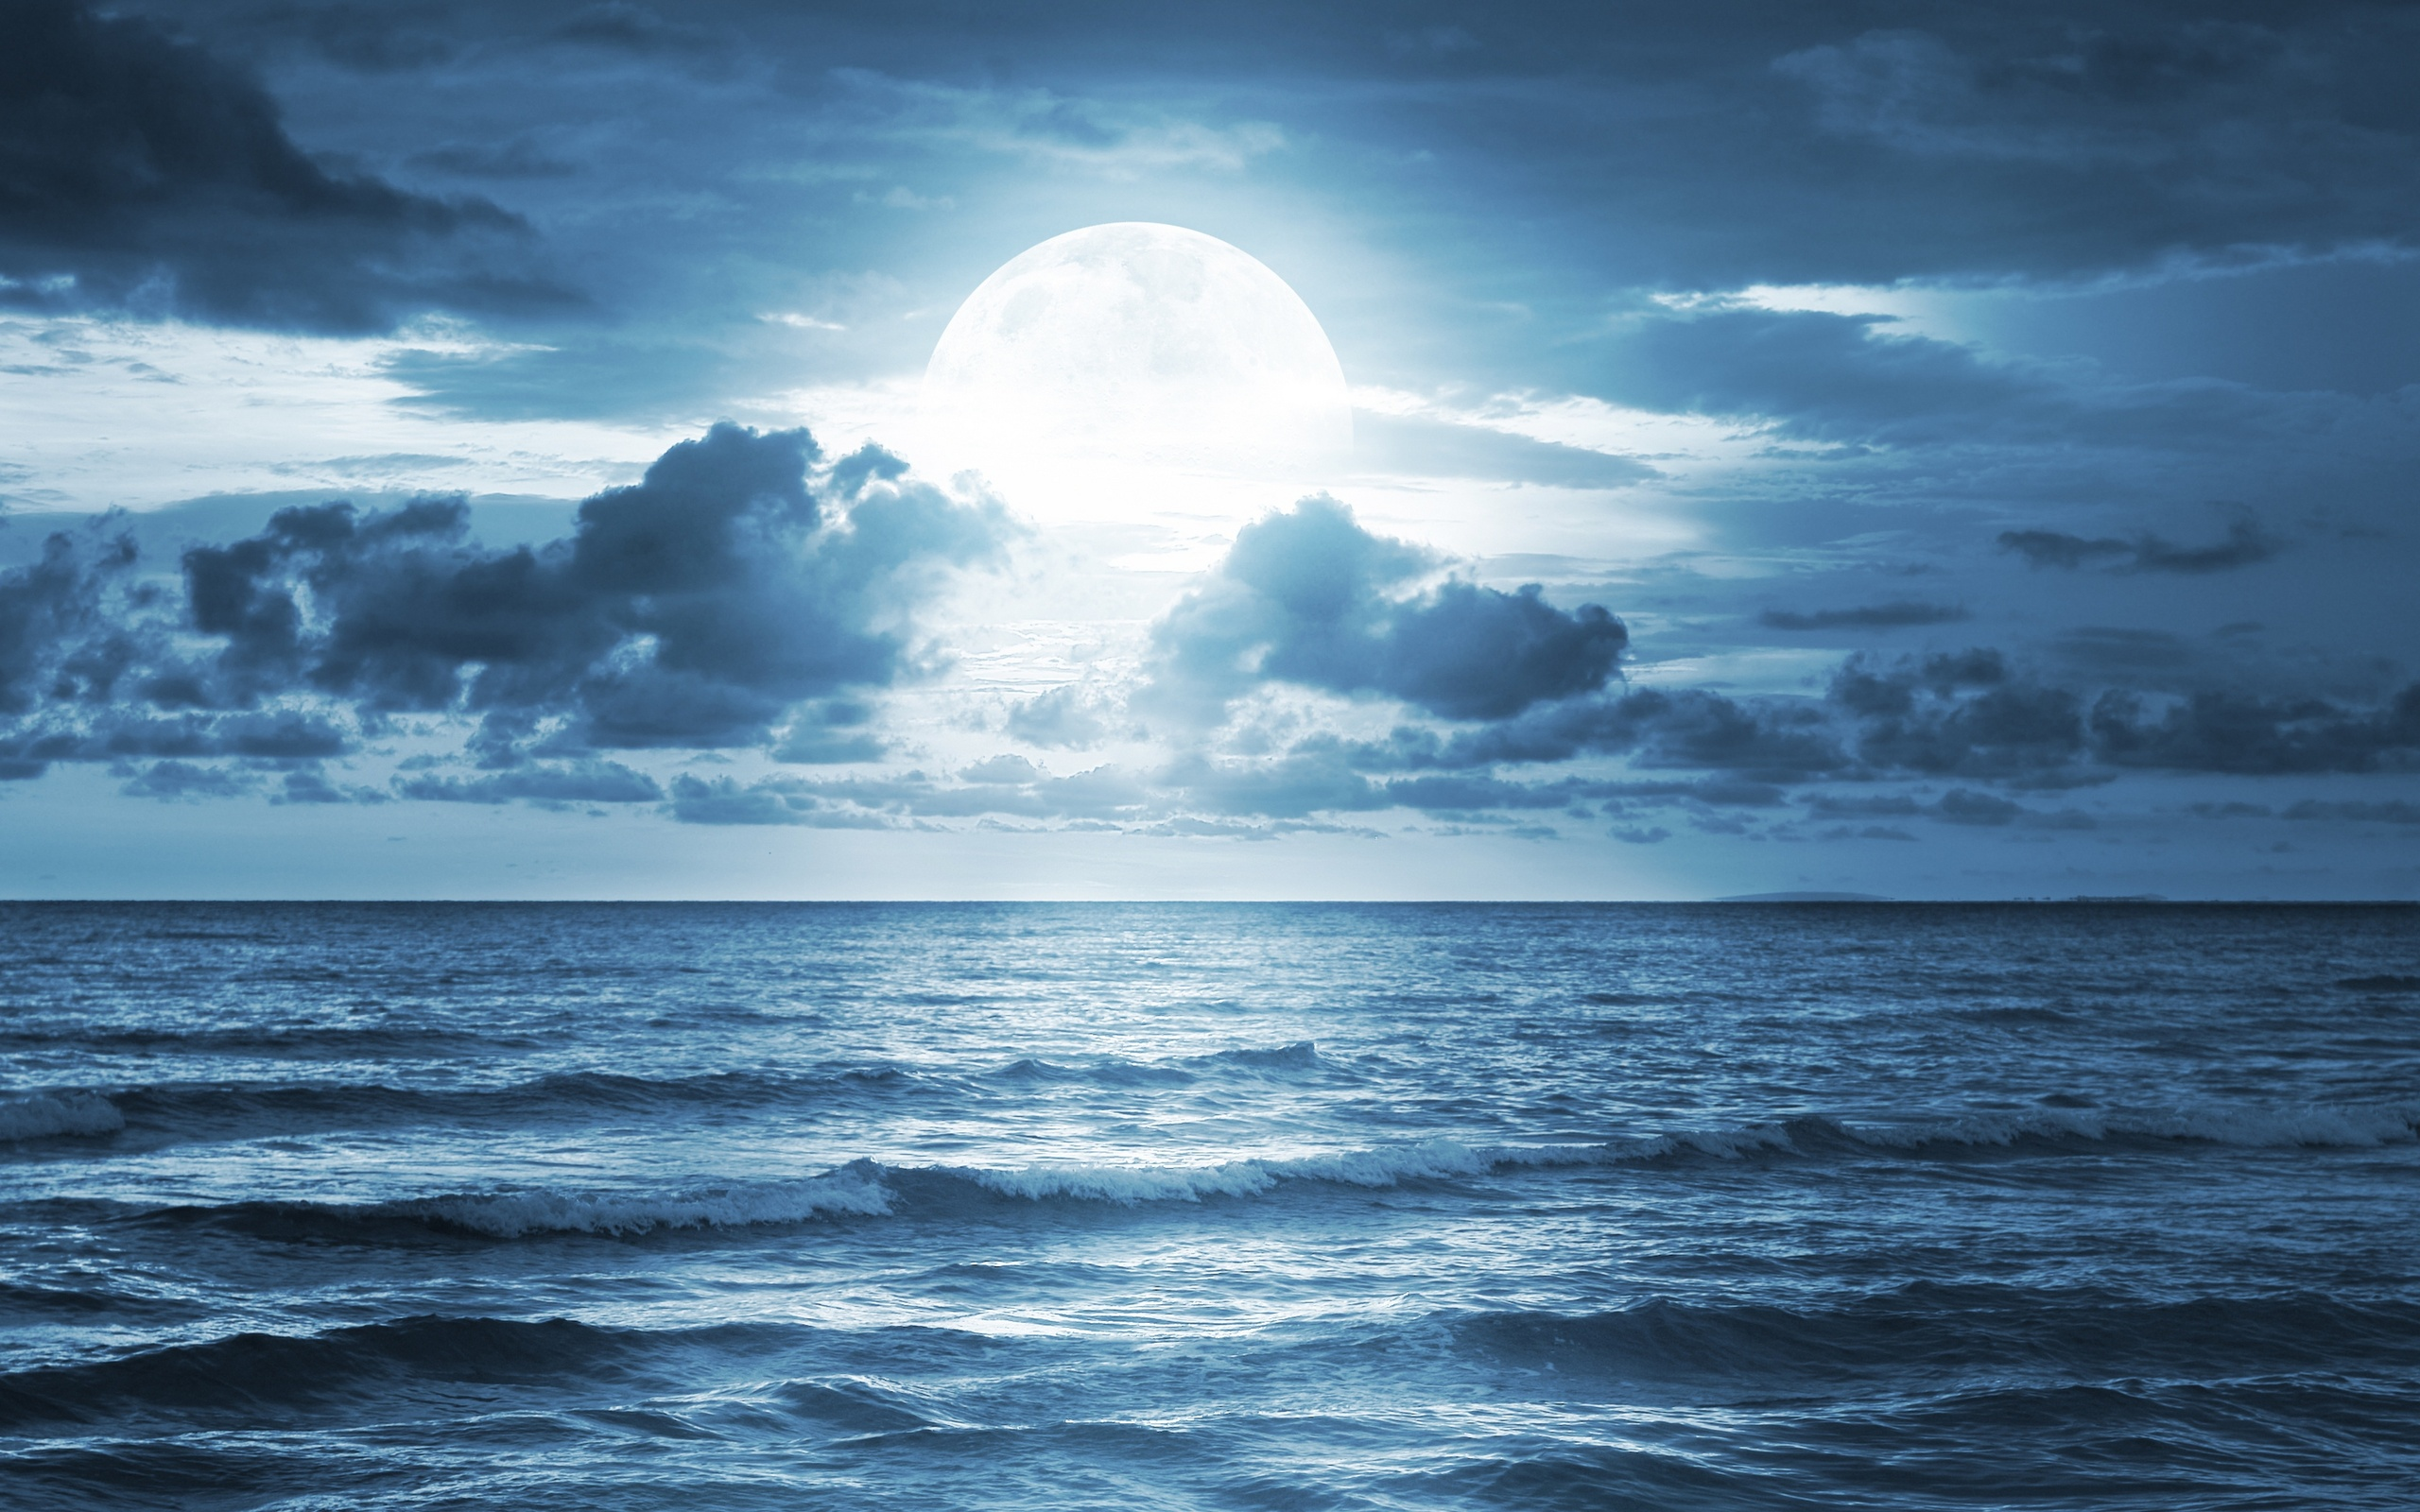 ocean sea moonlight dramatic scene full moon beautiful nature 2560x1600